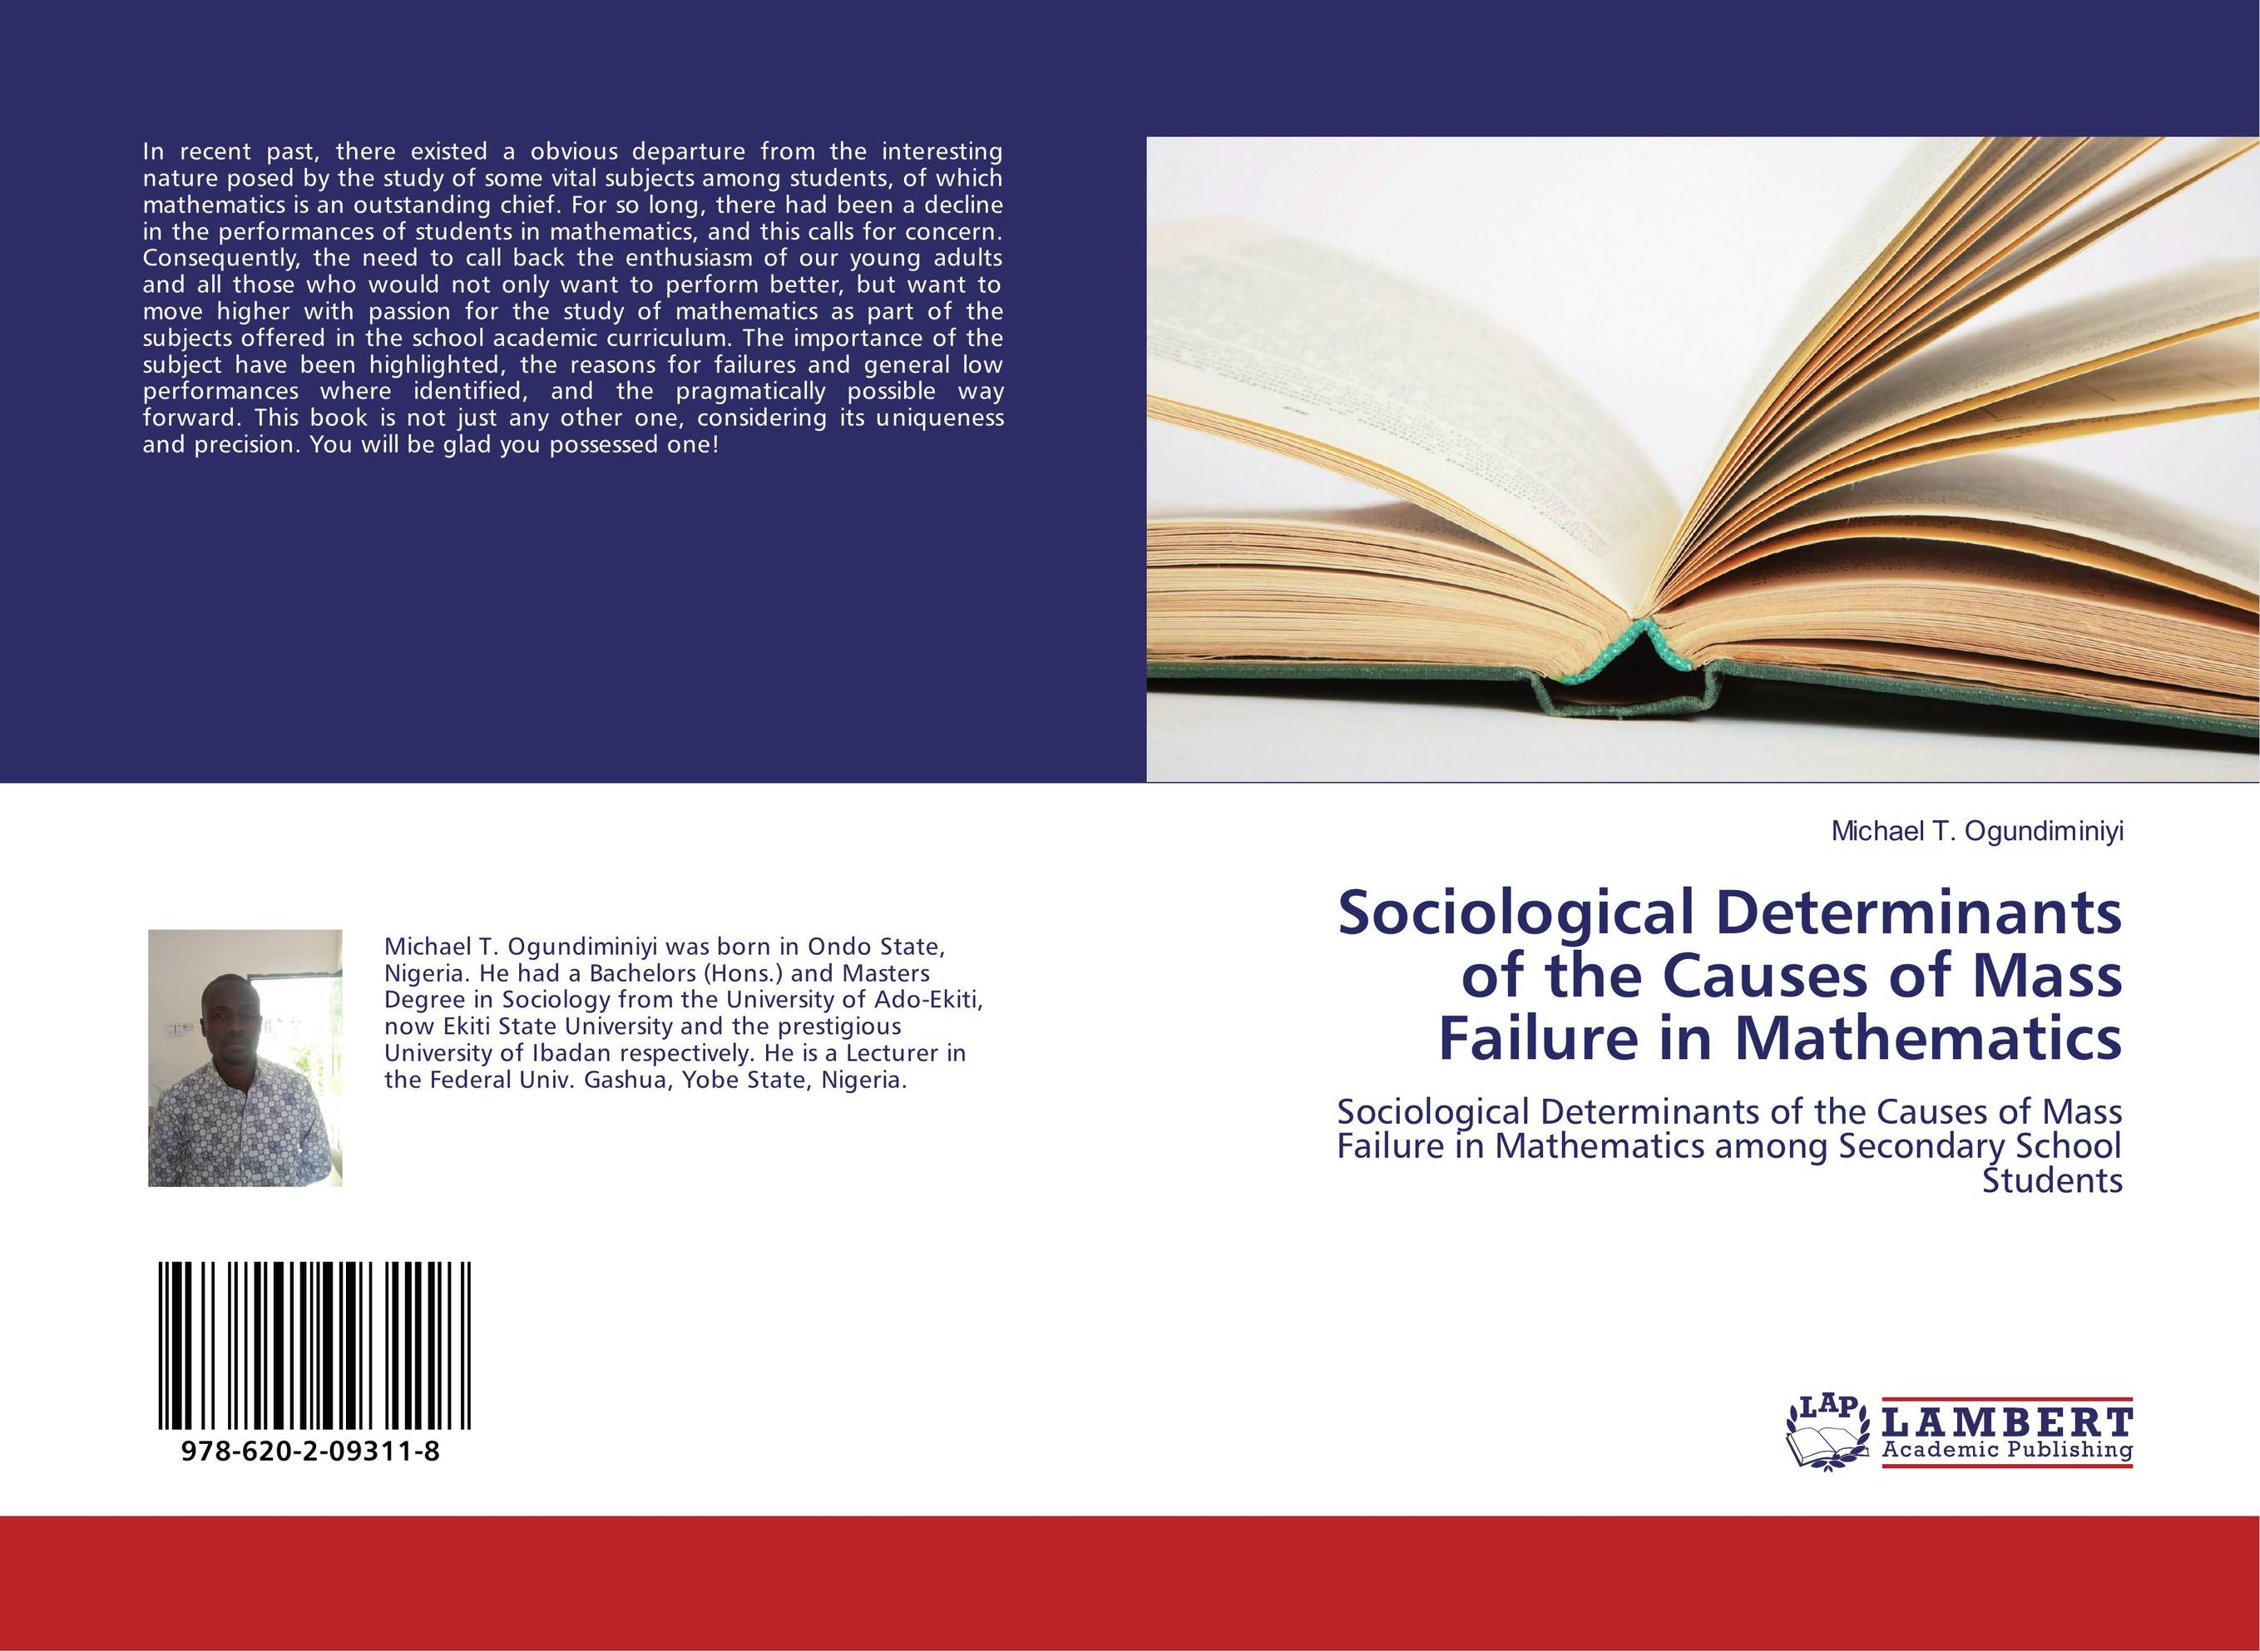 thesis on academic performance in mathematics Gathering about different factors relating to academic performance of students chi-square test of association and regressions was applied to investigate the effect of different factors on students' achievement.